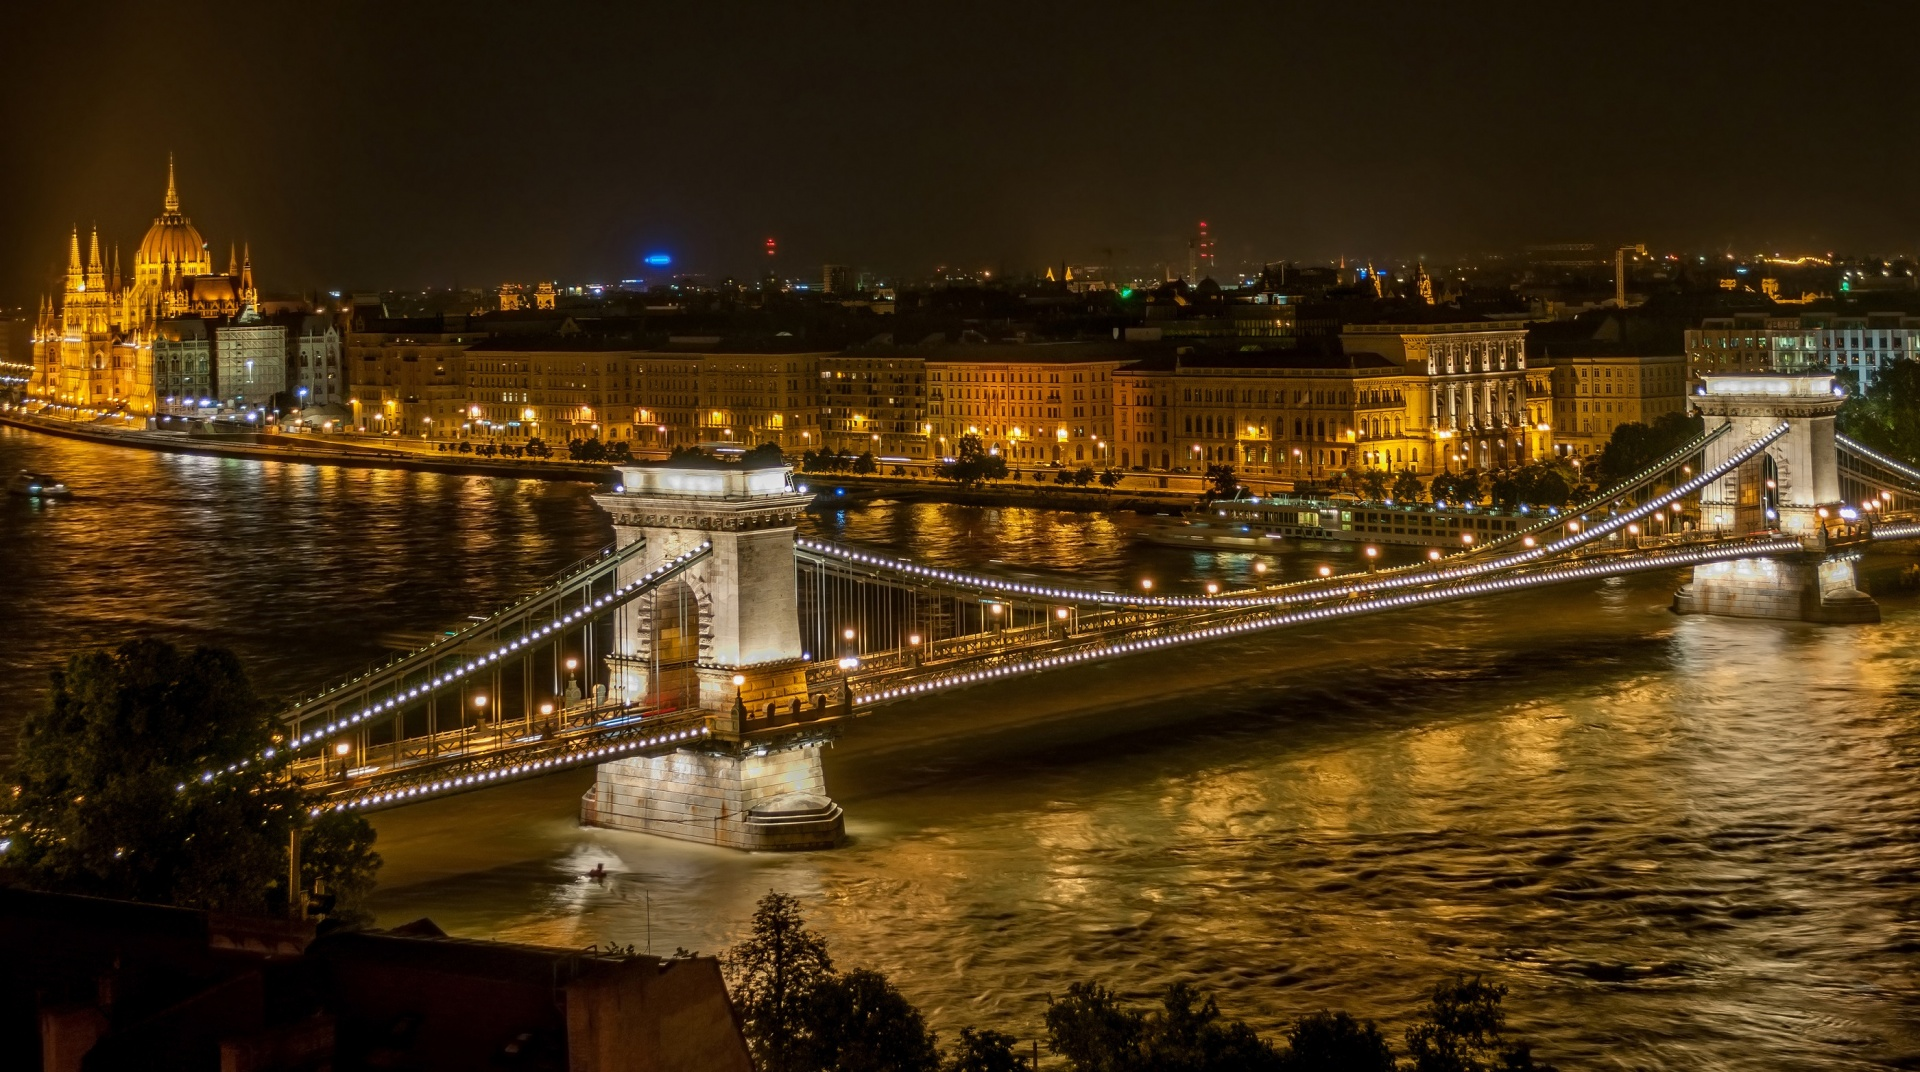 Night Lights, City Lights, Széchenyi Chain Bridge